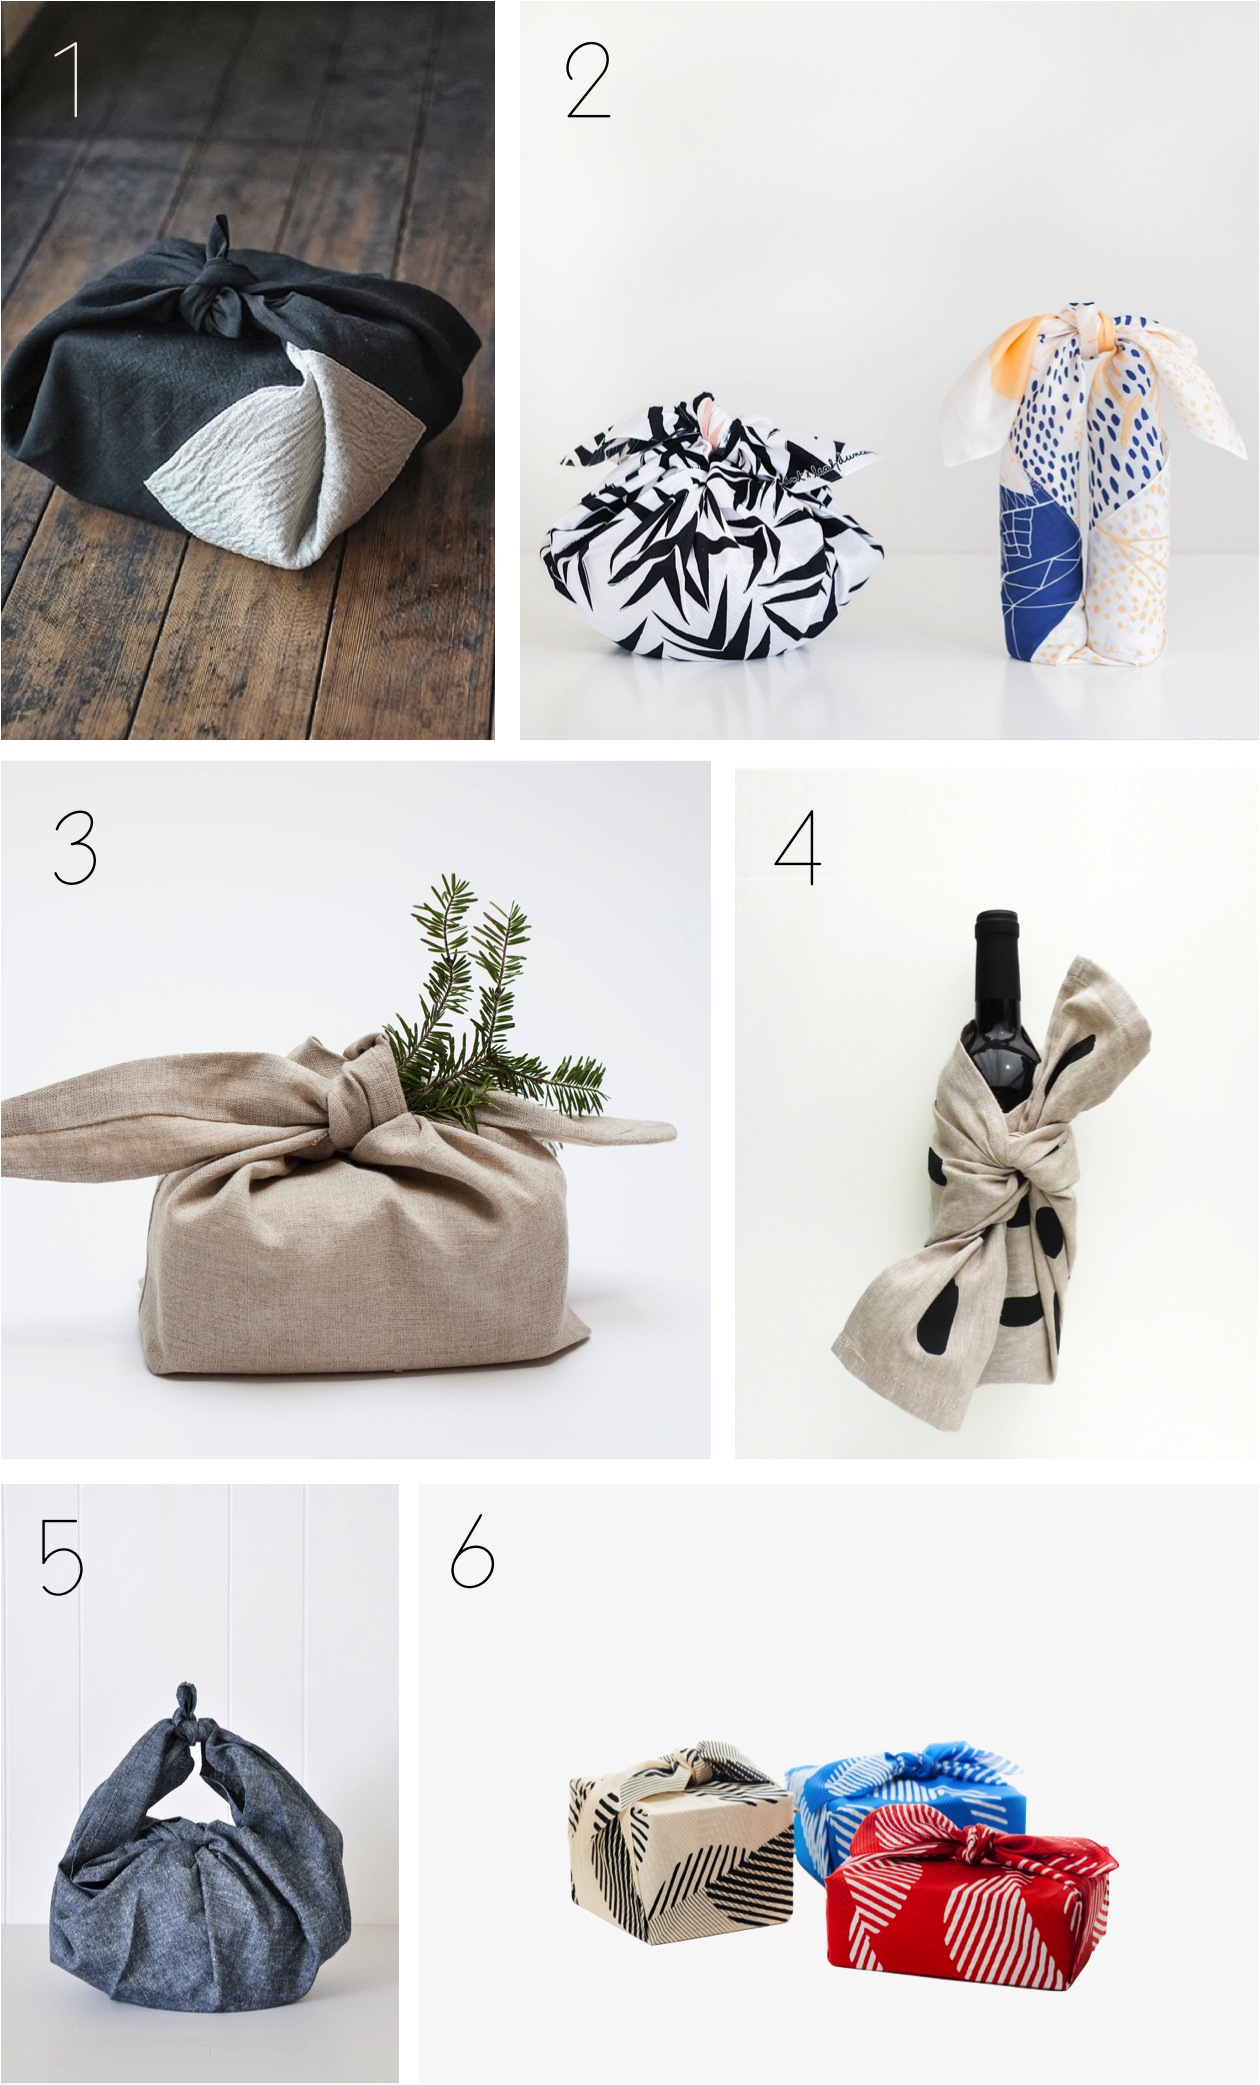 Japanese cloth gift wrapping